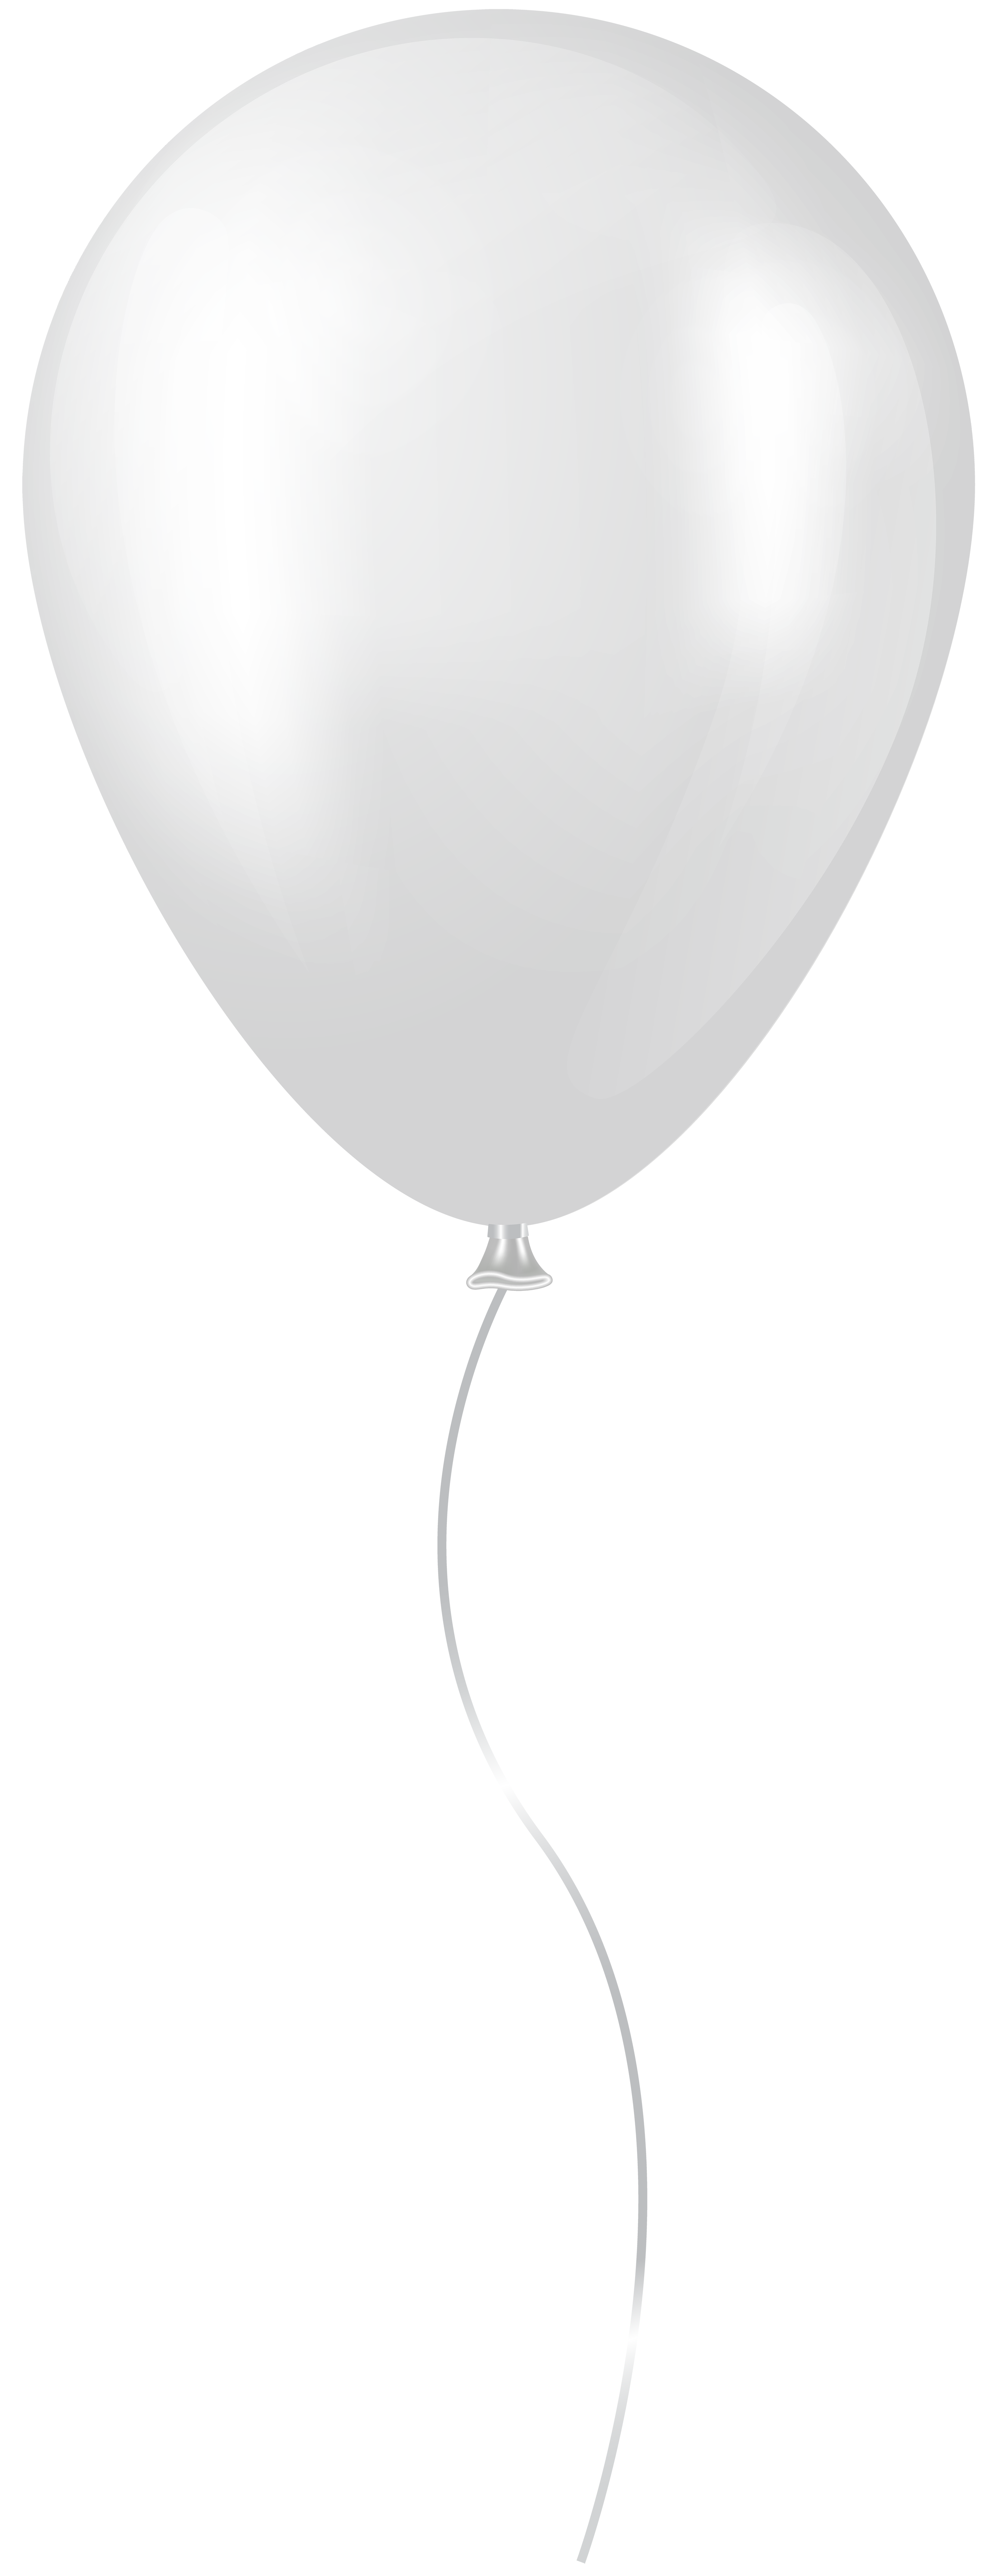 White balloon png. Transparent clip art gallery